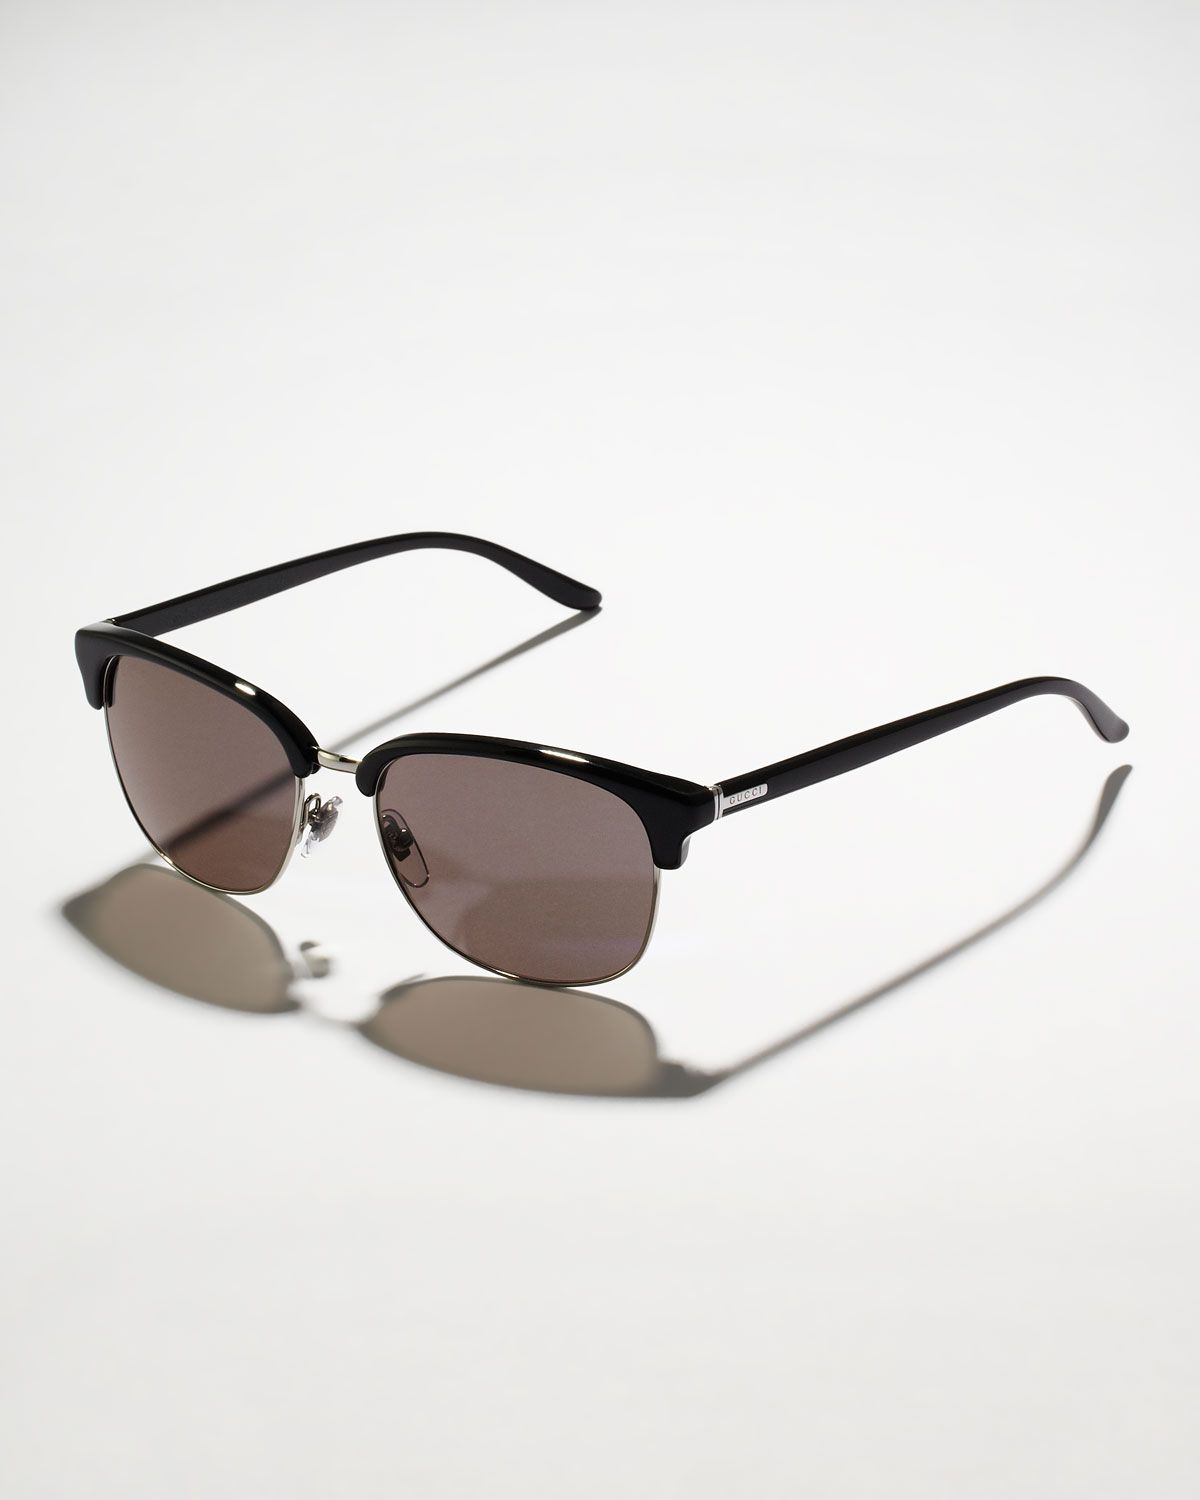 http://xetapharm.com/oliver-peoples-emely-rounded-pillow-sunglasses-oxblood-p-3177.html